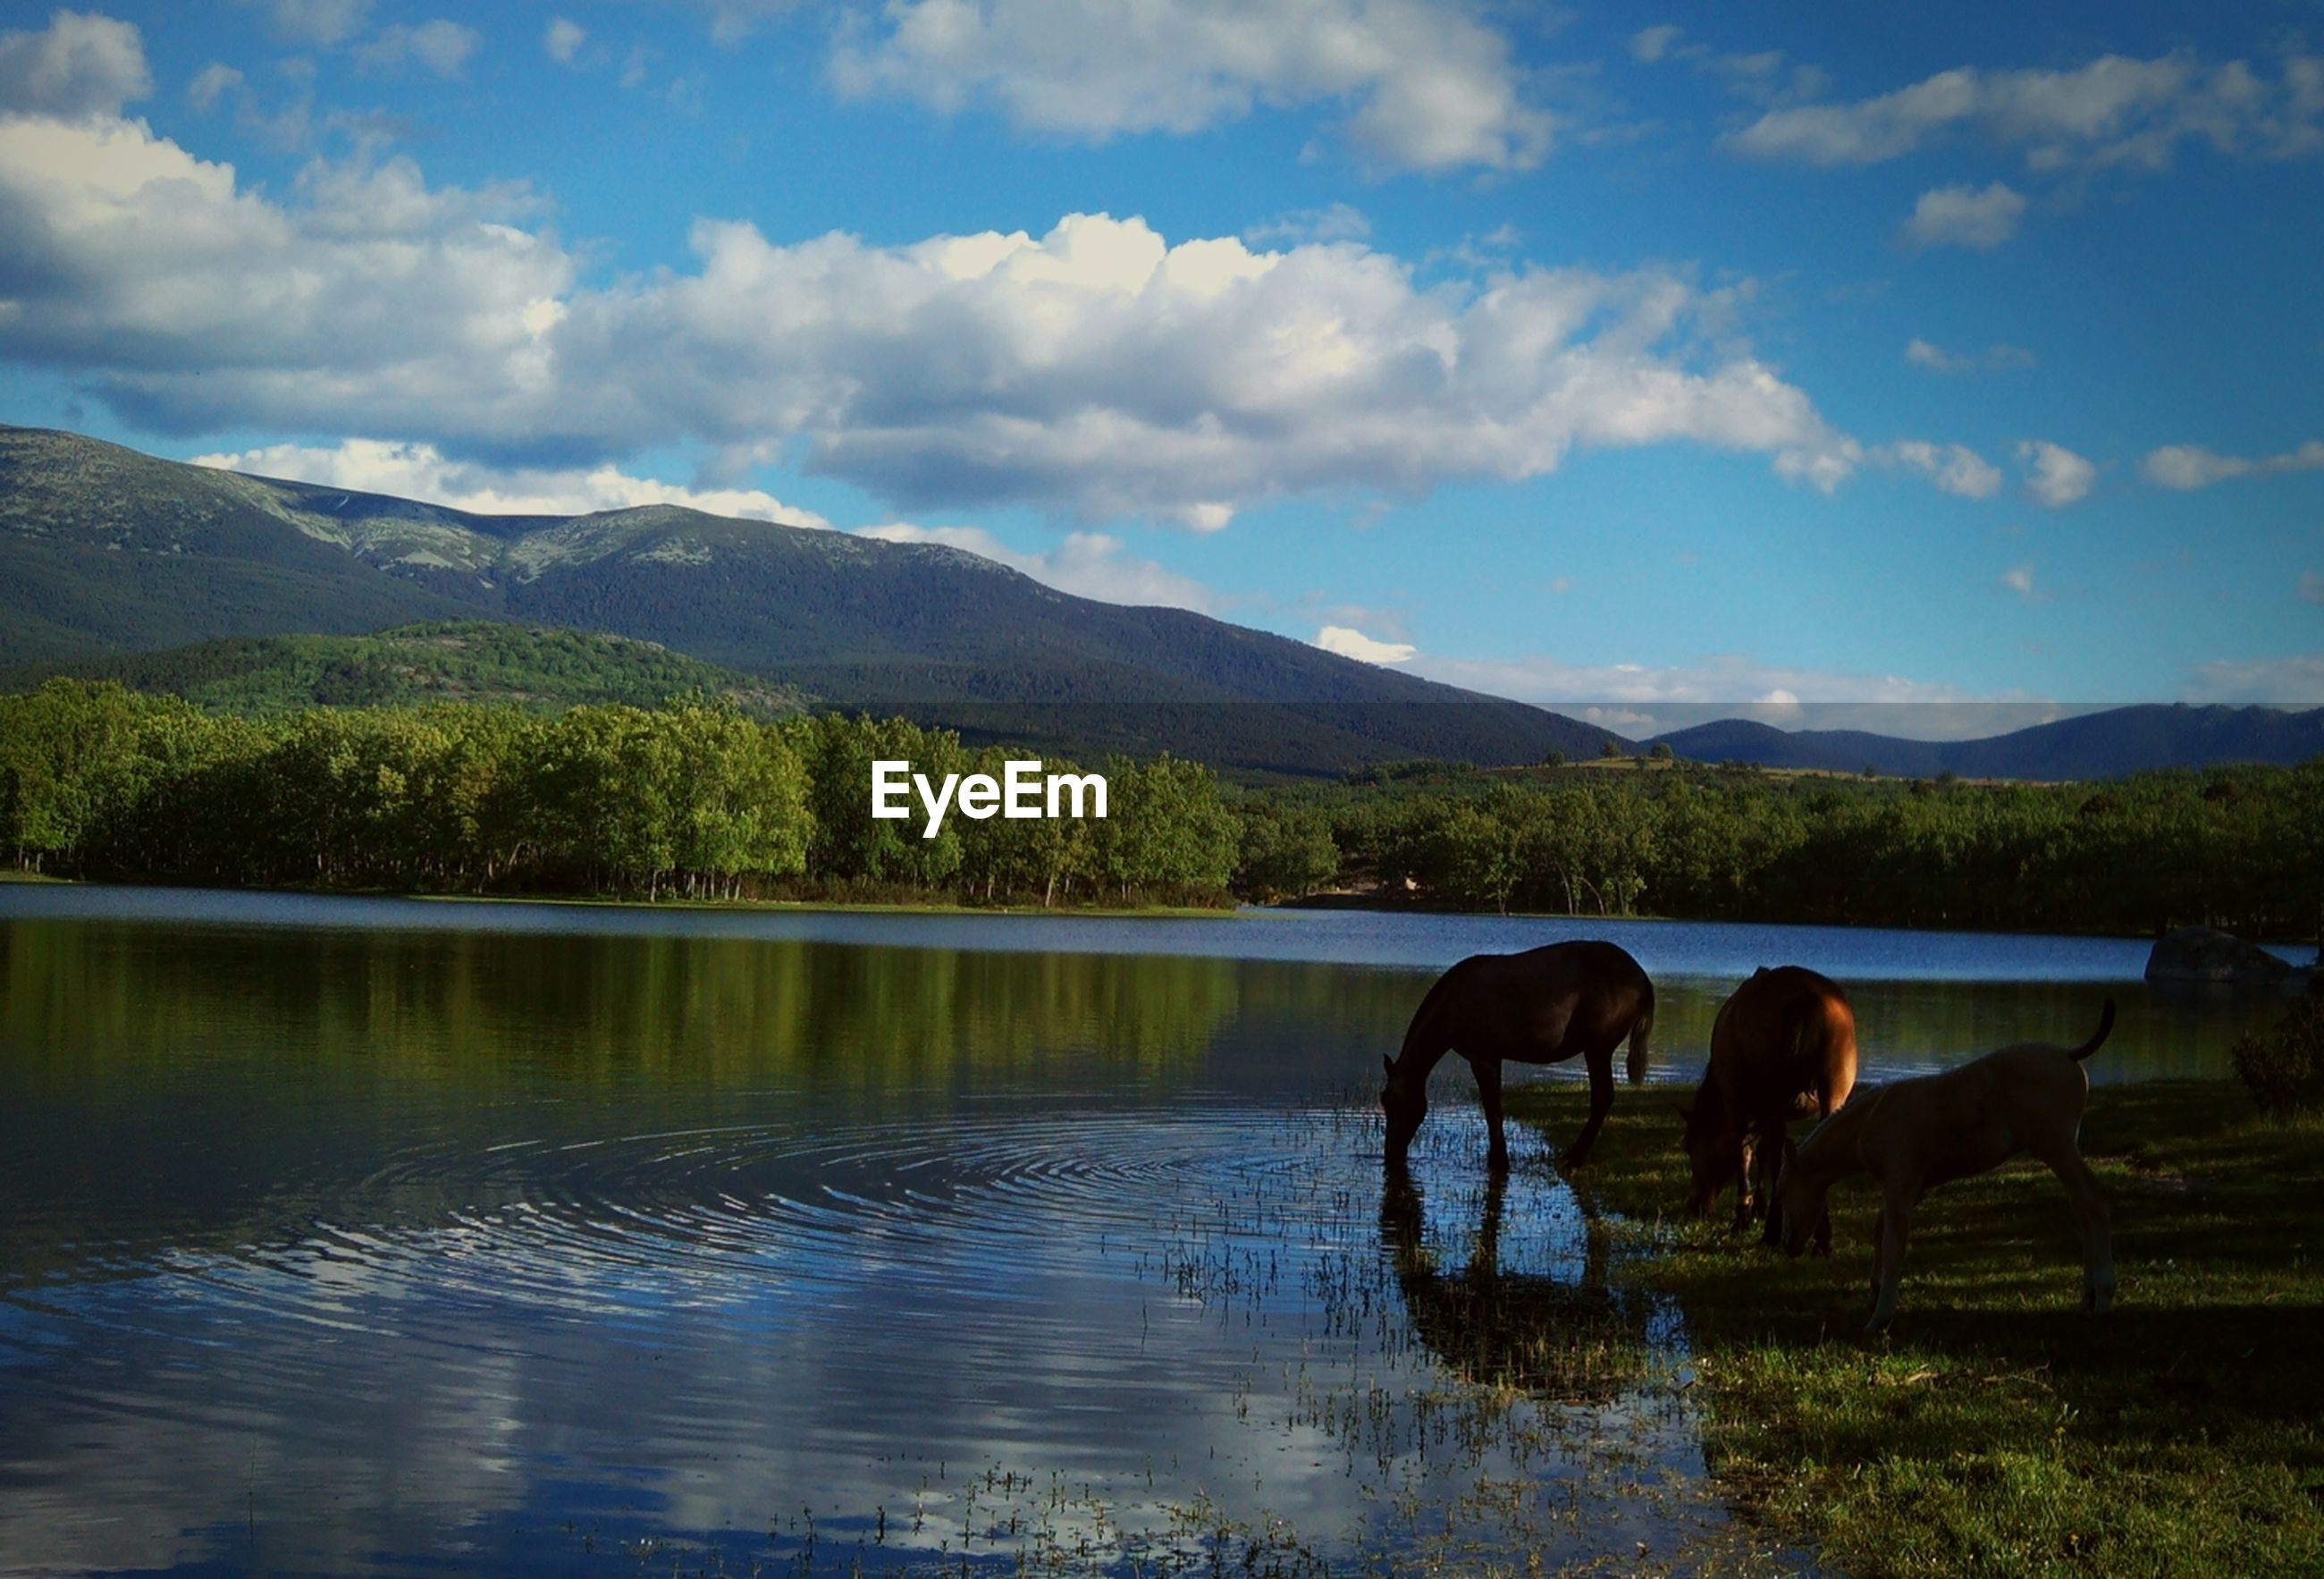 Horses drinking from a river with mountain and forest in the background